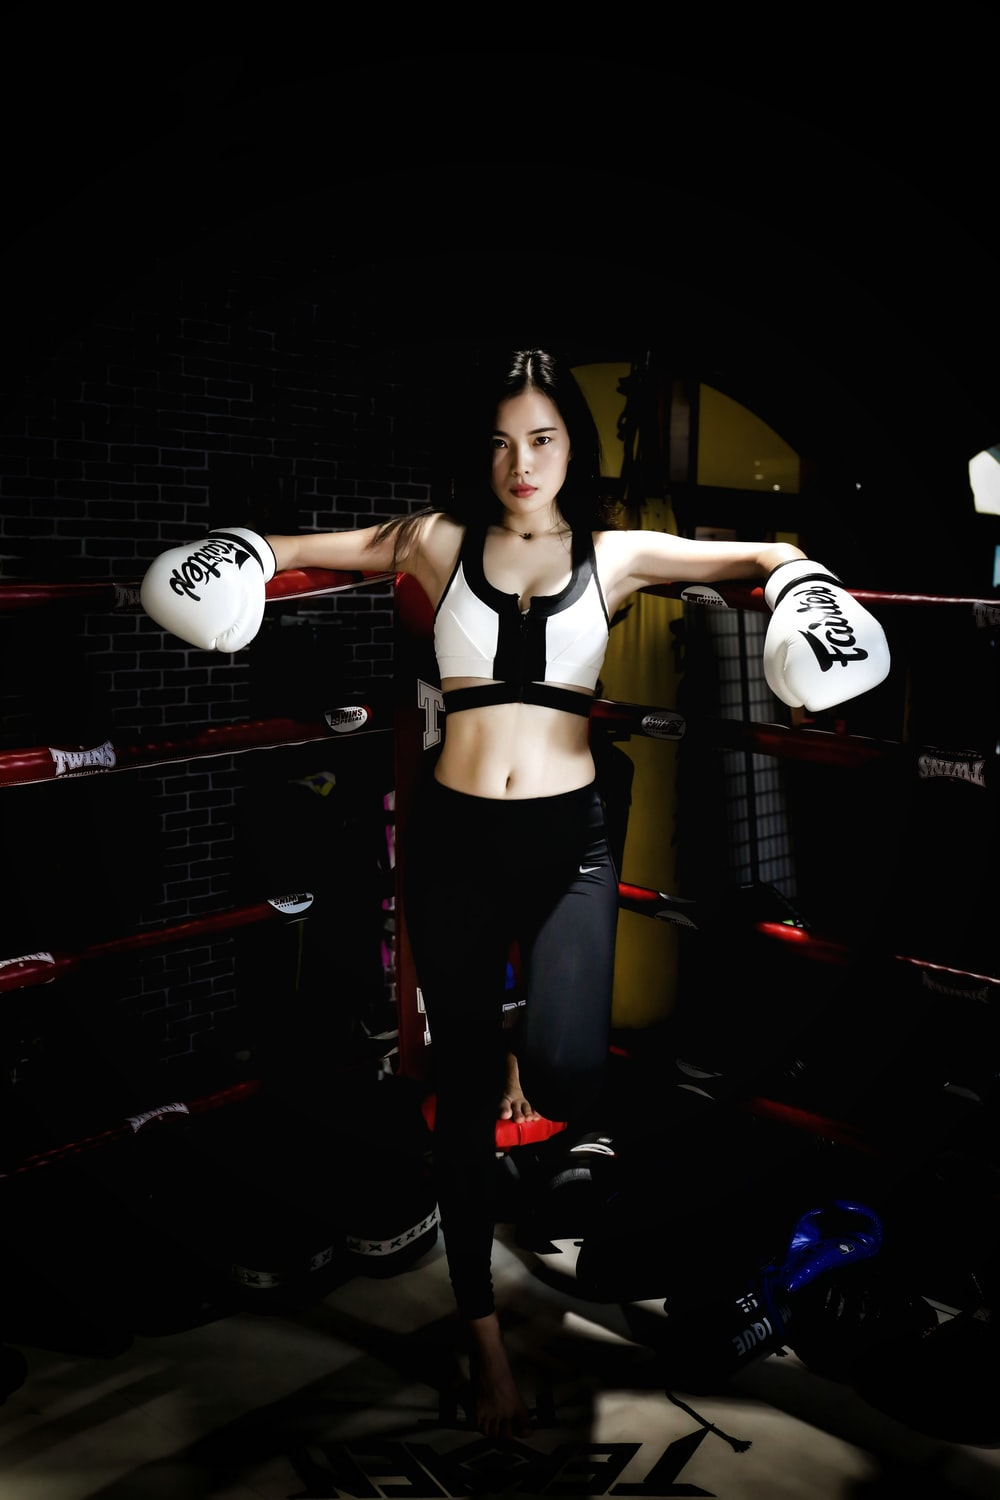 woman inside boxing ring